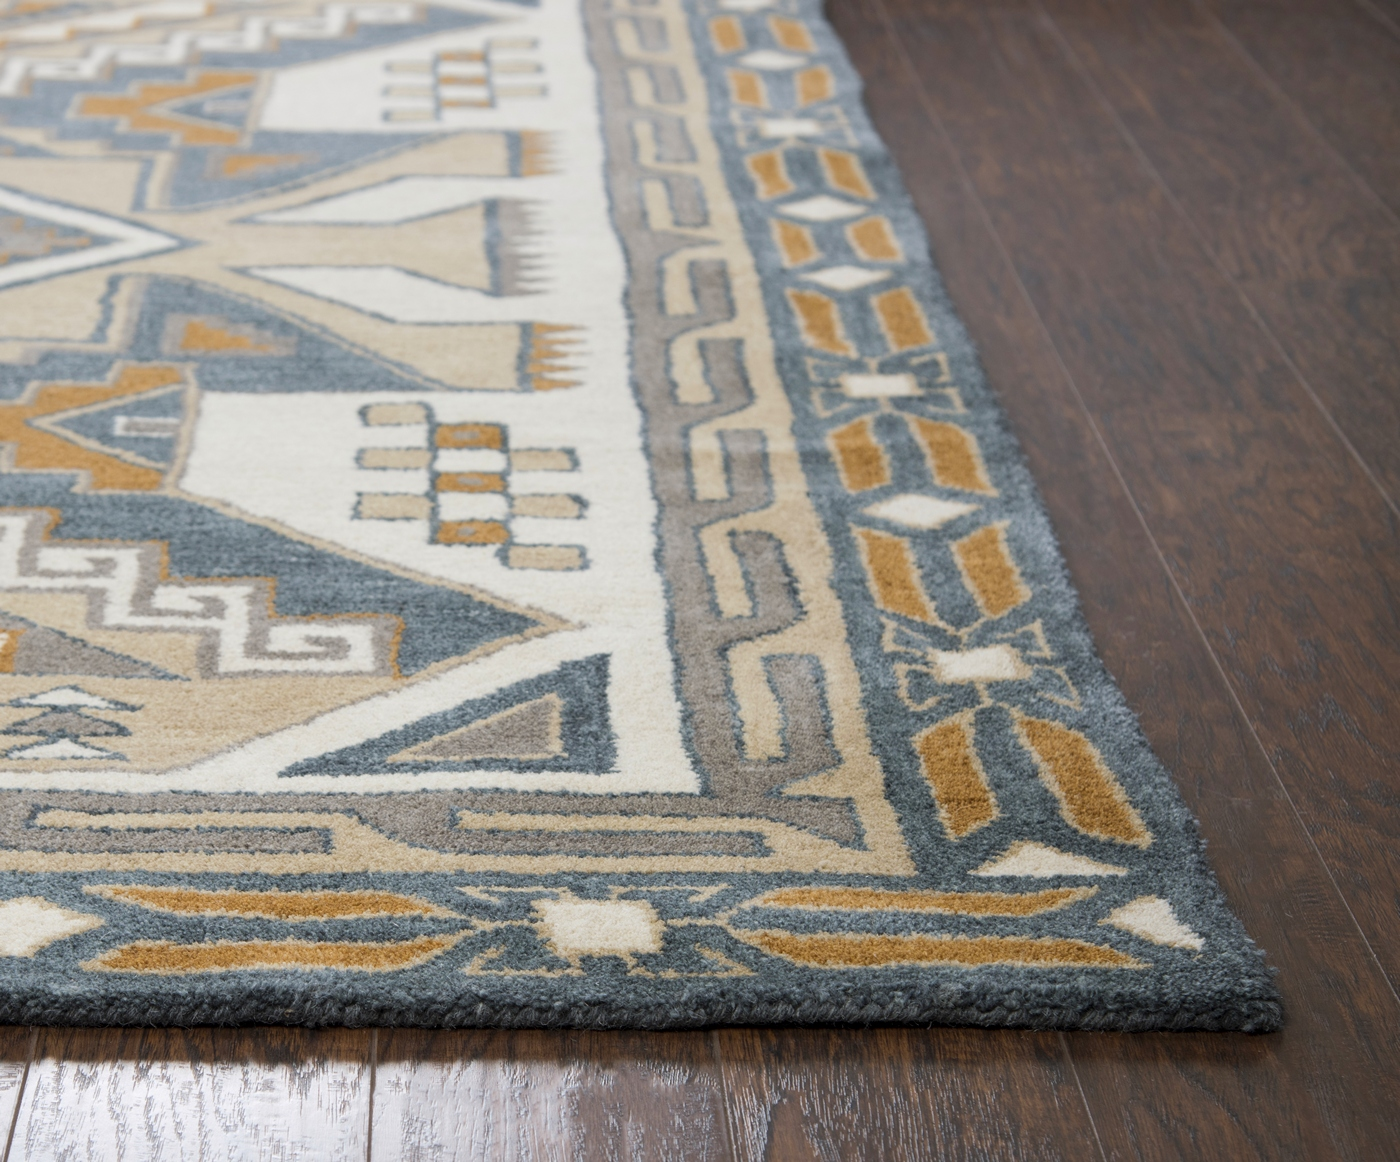 Southwest Ornate Aztec Wool Area Rug In Gray  Tan 8 x 10